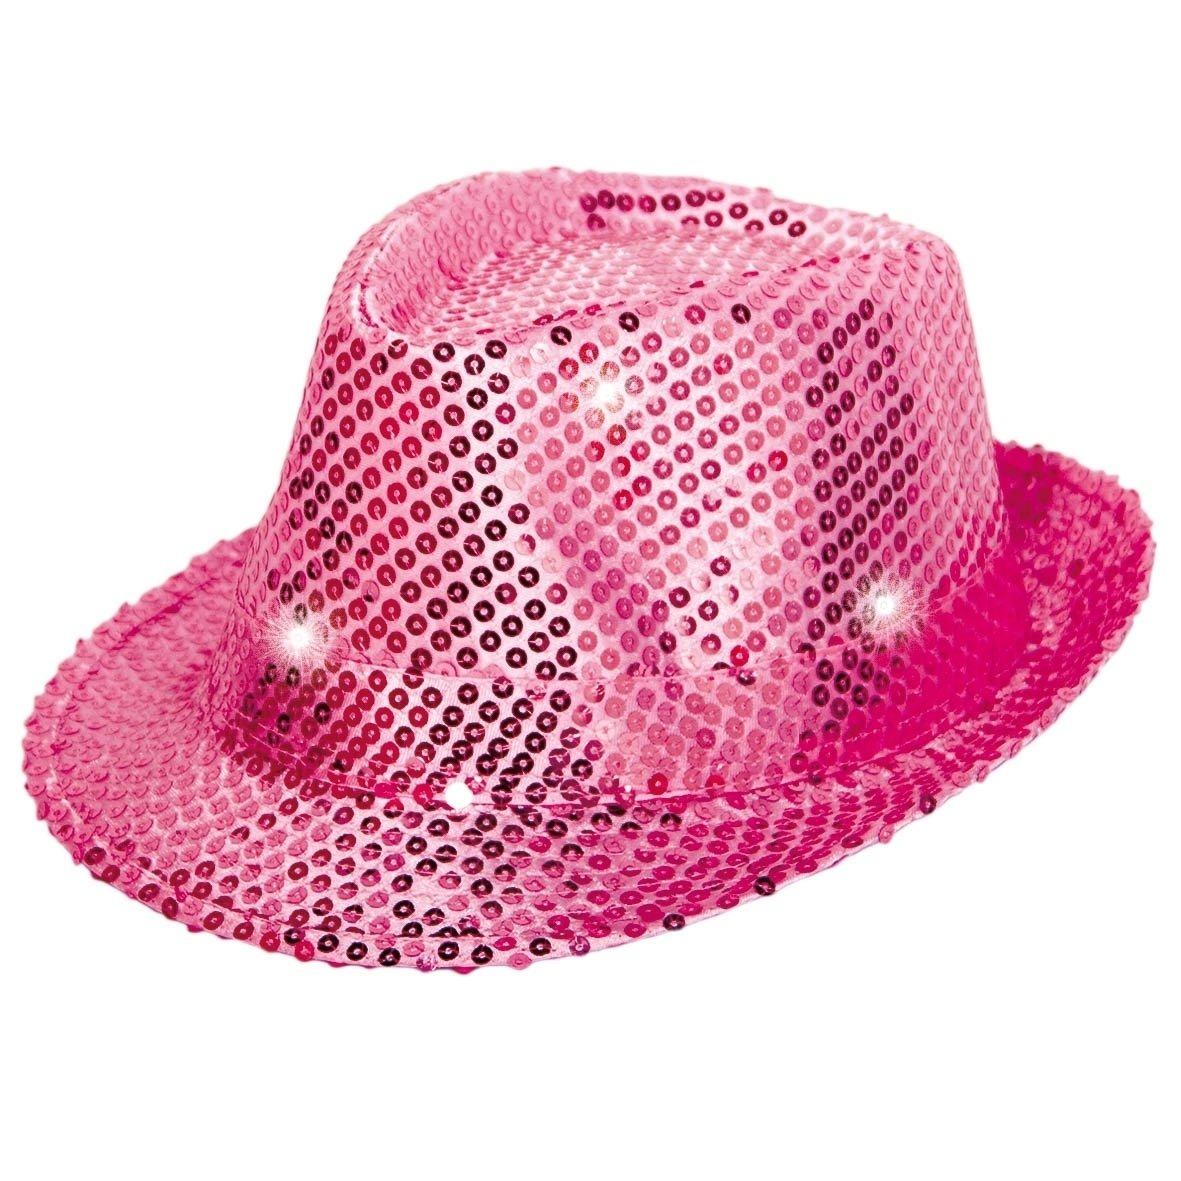 FOLAT Party 24073 Tribly Hat with Sequins and LED Lighting – Unisex Adult – Magenta, One Size